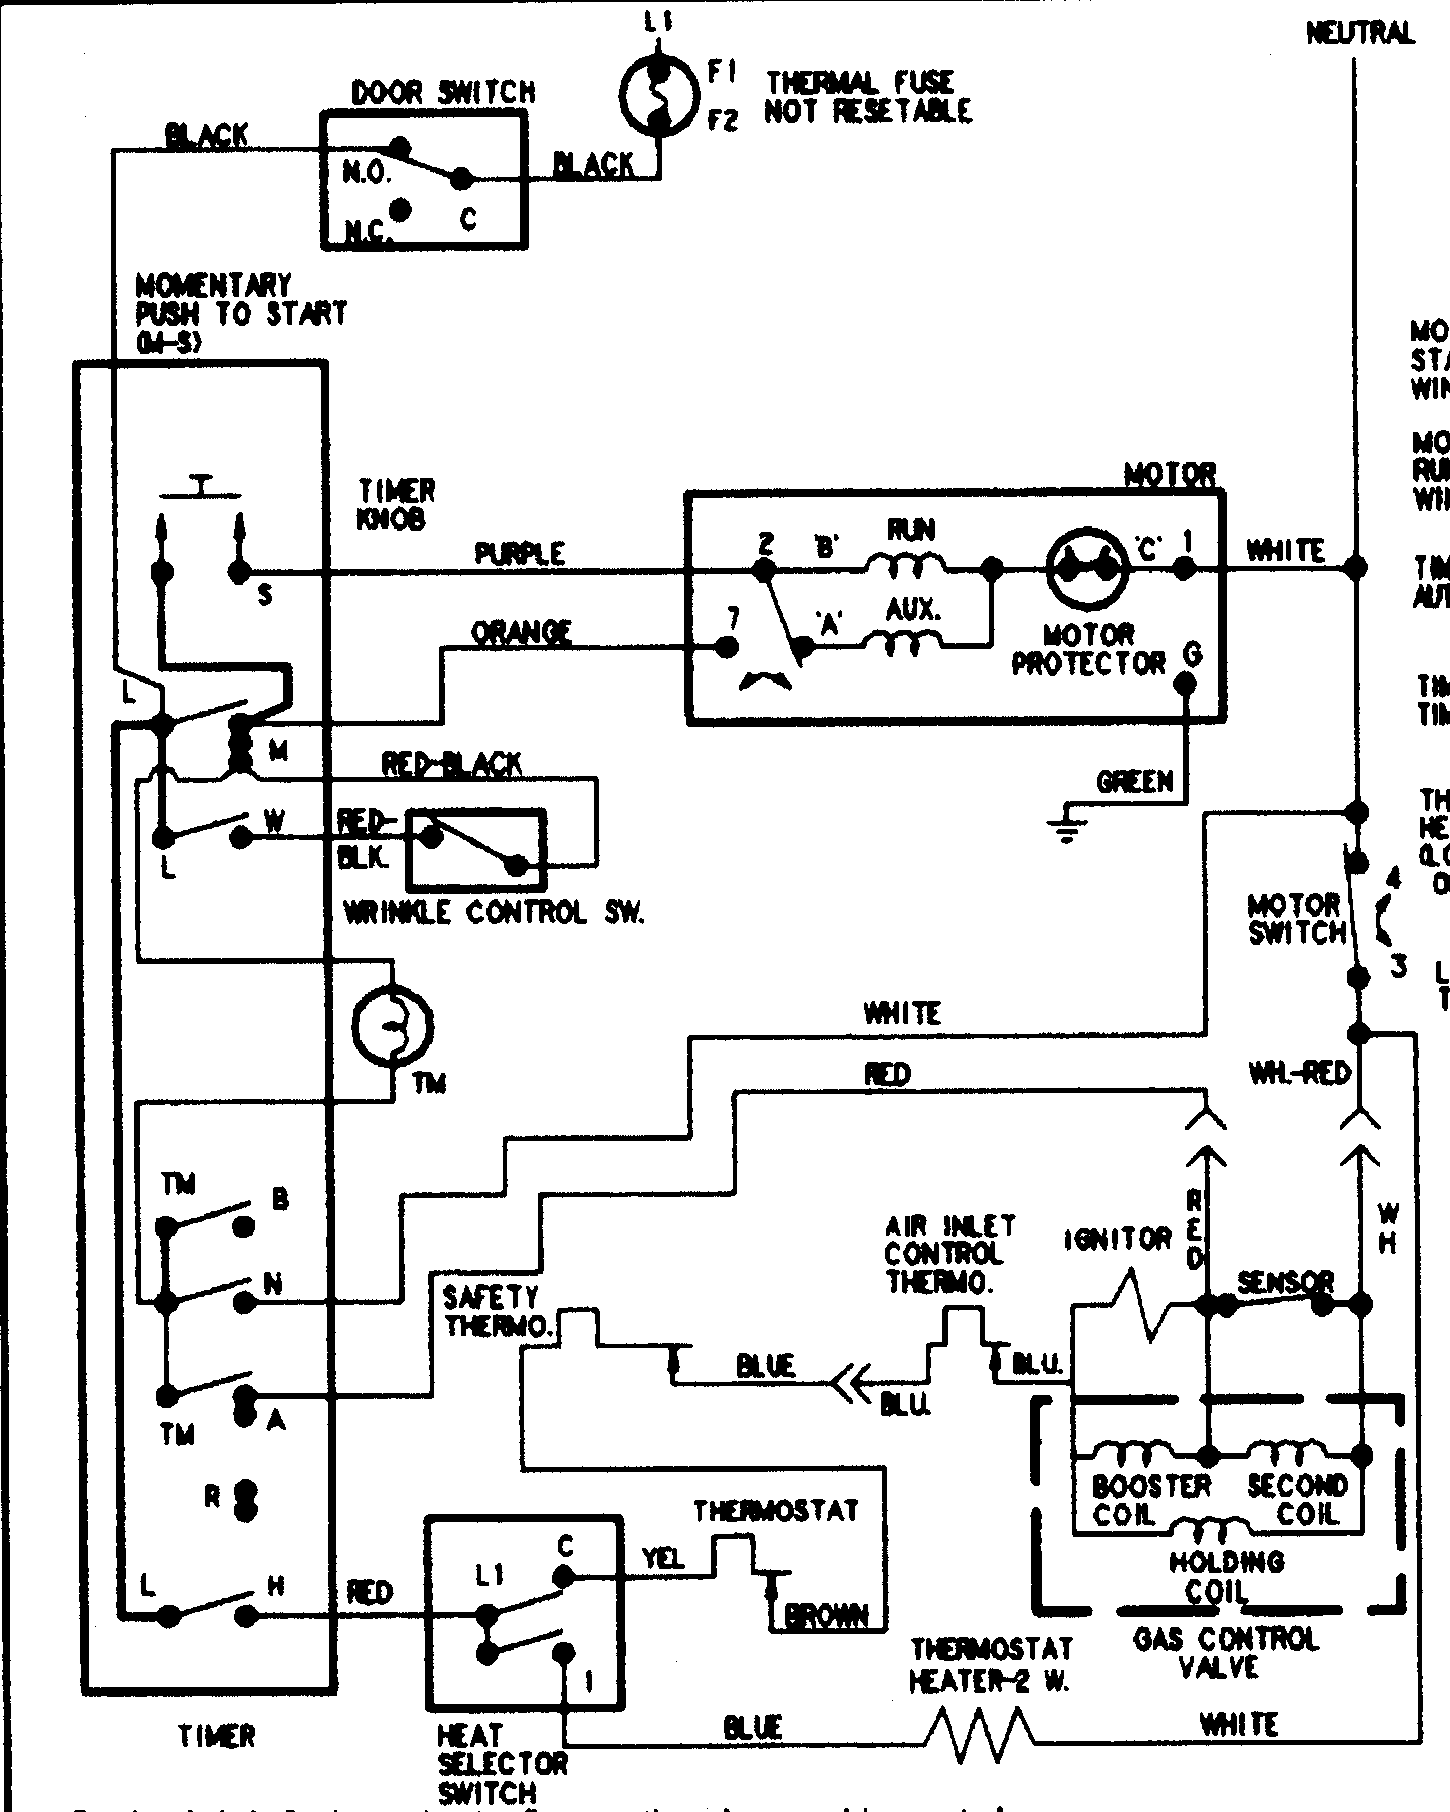 square d wiring diagram fisher snow plow controller 8910 dpa 43 35